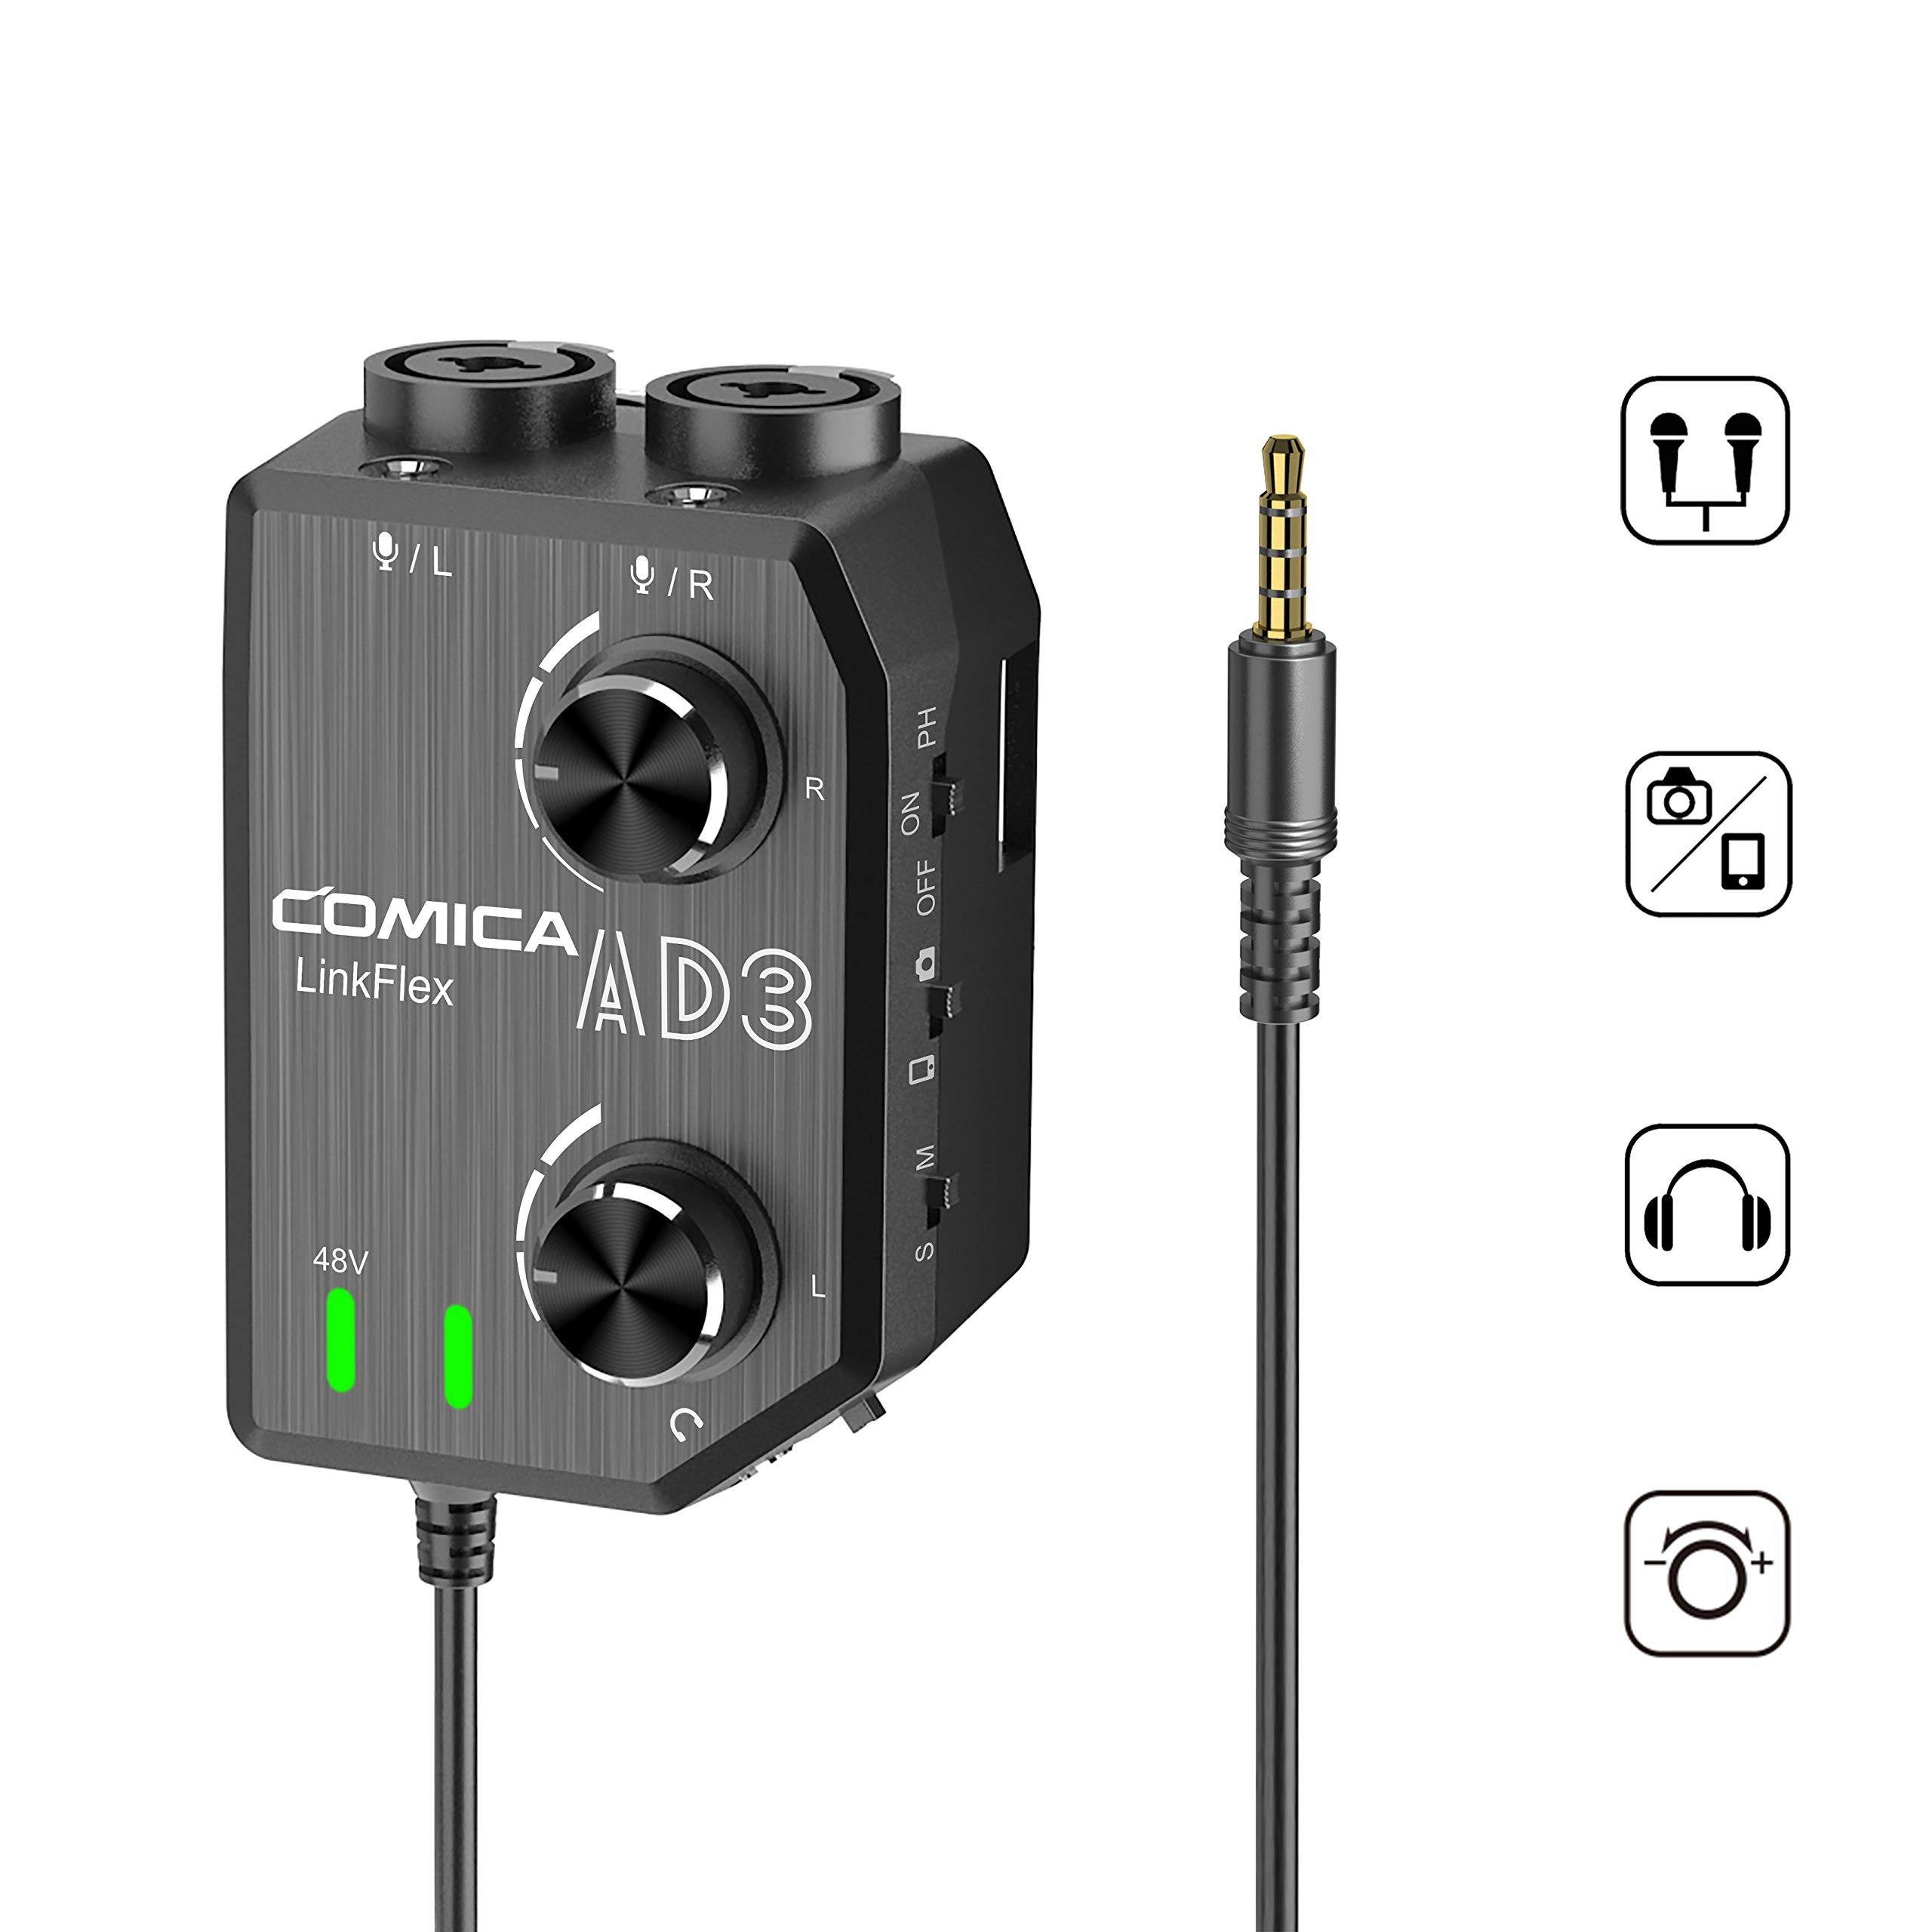 COMICA LINKFLEX.AD3 2-channel XLR/3.5mm Microphone Preamp Mixer with 48V Phantom Power, Real Time Monitor, Guitar Interface Preamp for DSLR Cameras, Camcorders, iPhone,iPad,Mac and Android Smartphones